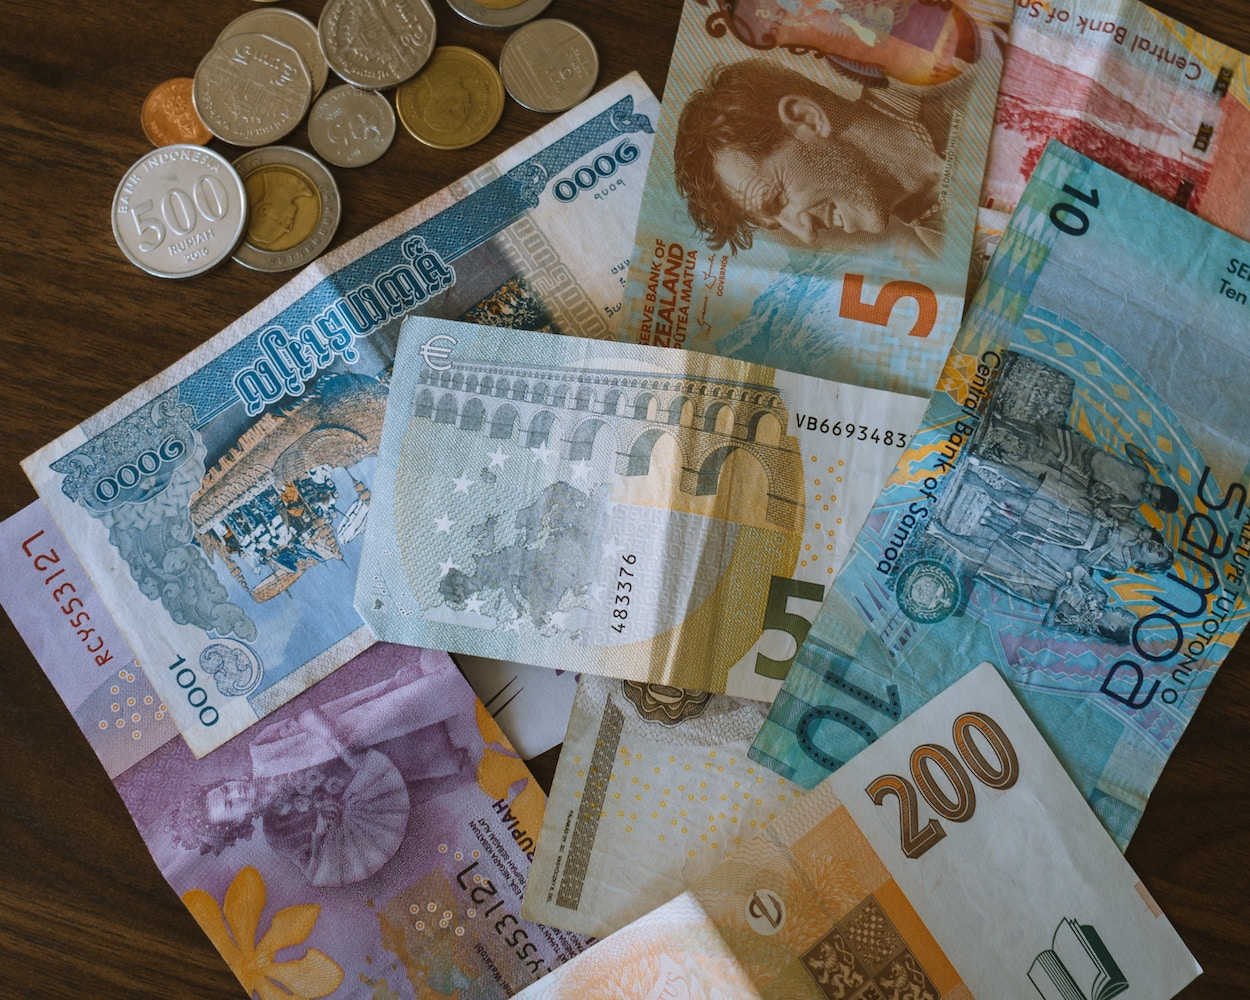 Will the Eco help West Africa reclaim monetary sovereignty?